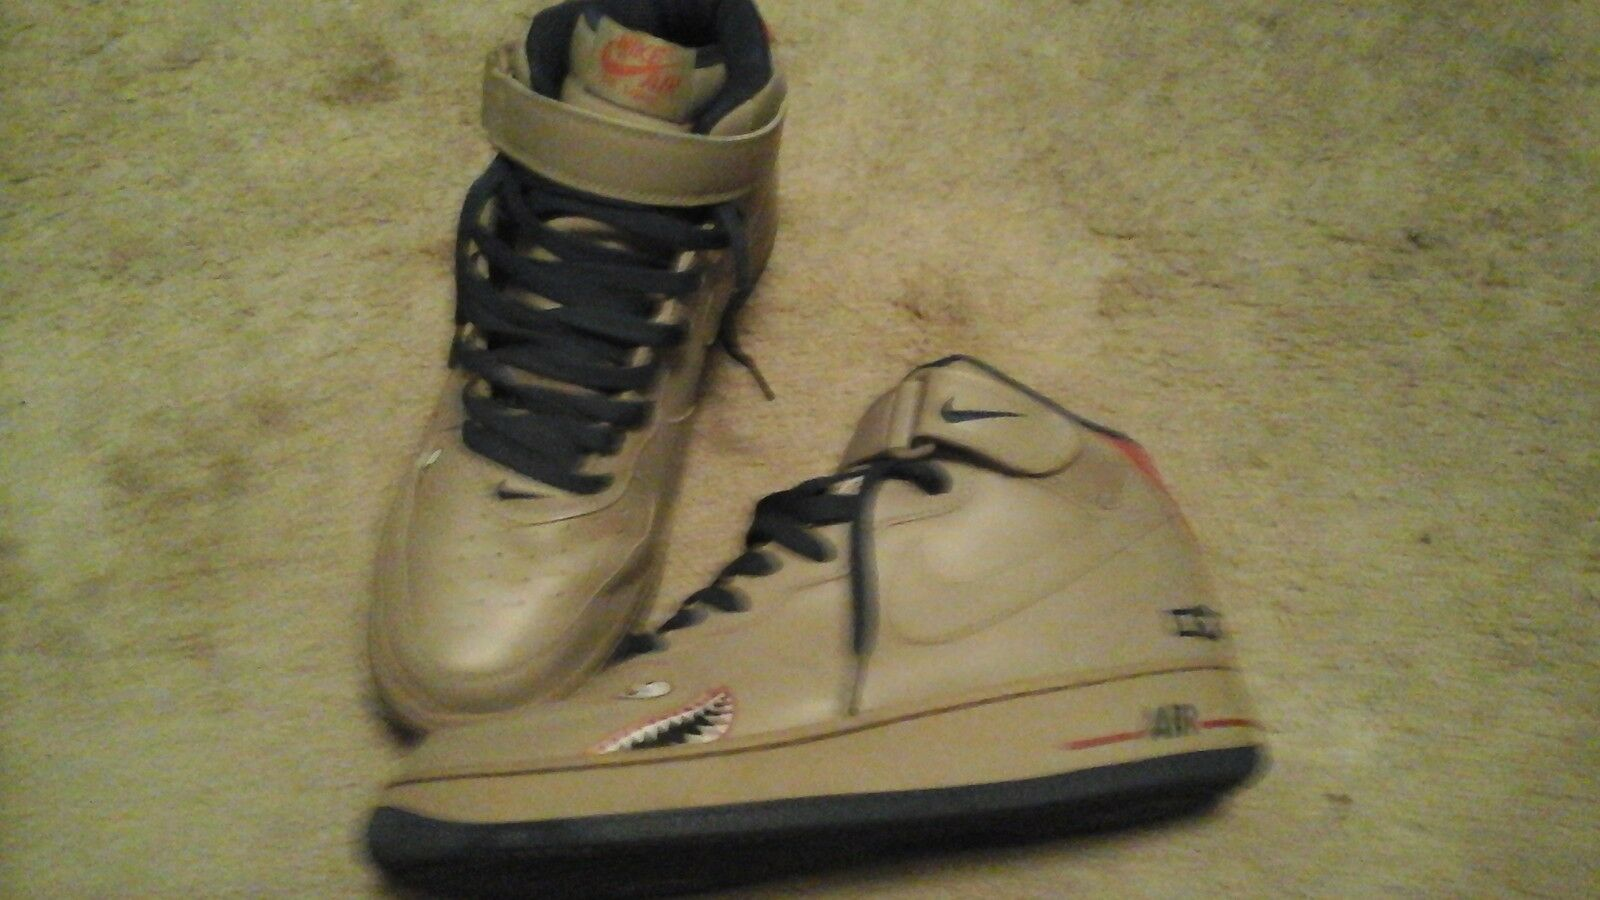 NIKE AIR FORCE 1 AIR FORCE EDITION MENS SIZE 10 RARE AF1s SEE PICS 4 DETAILS